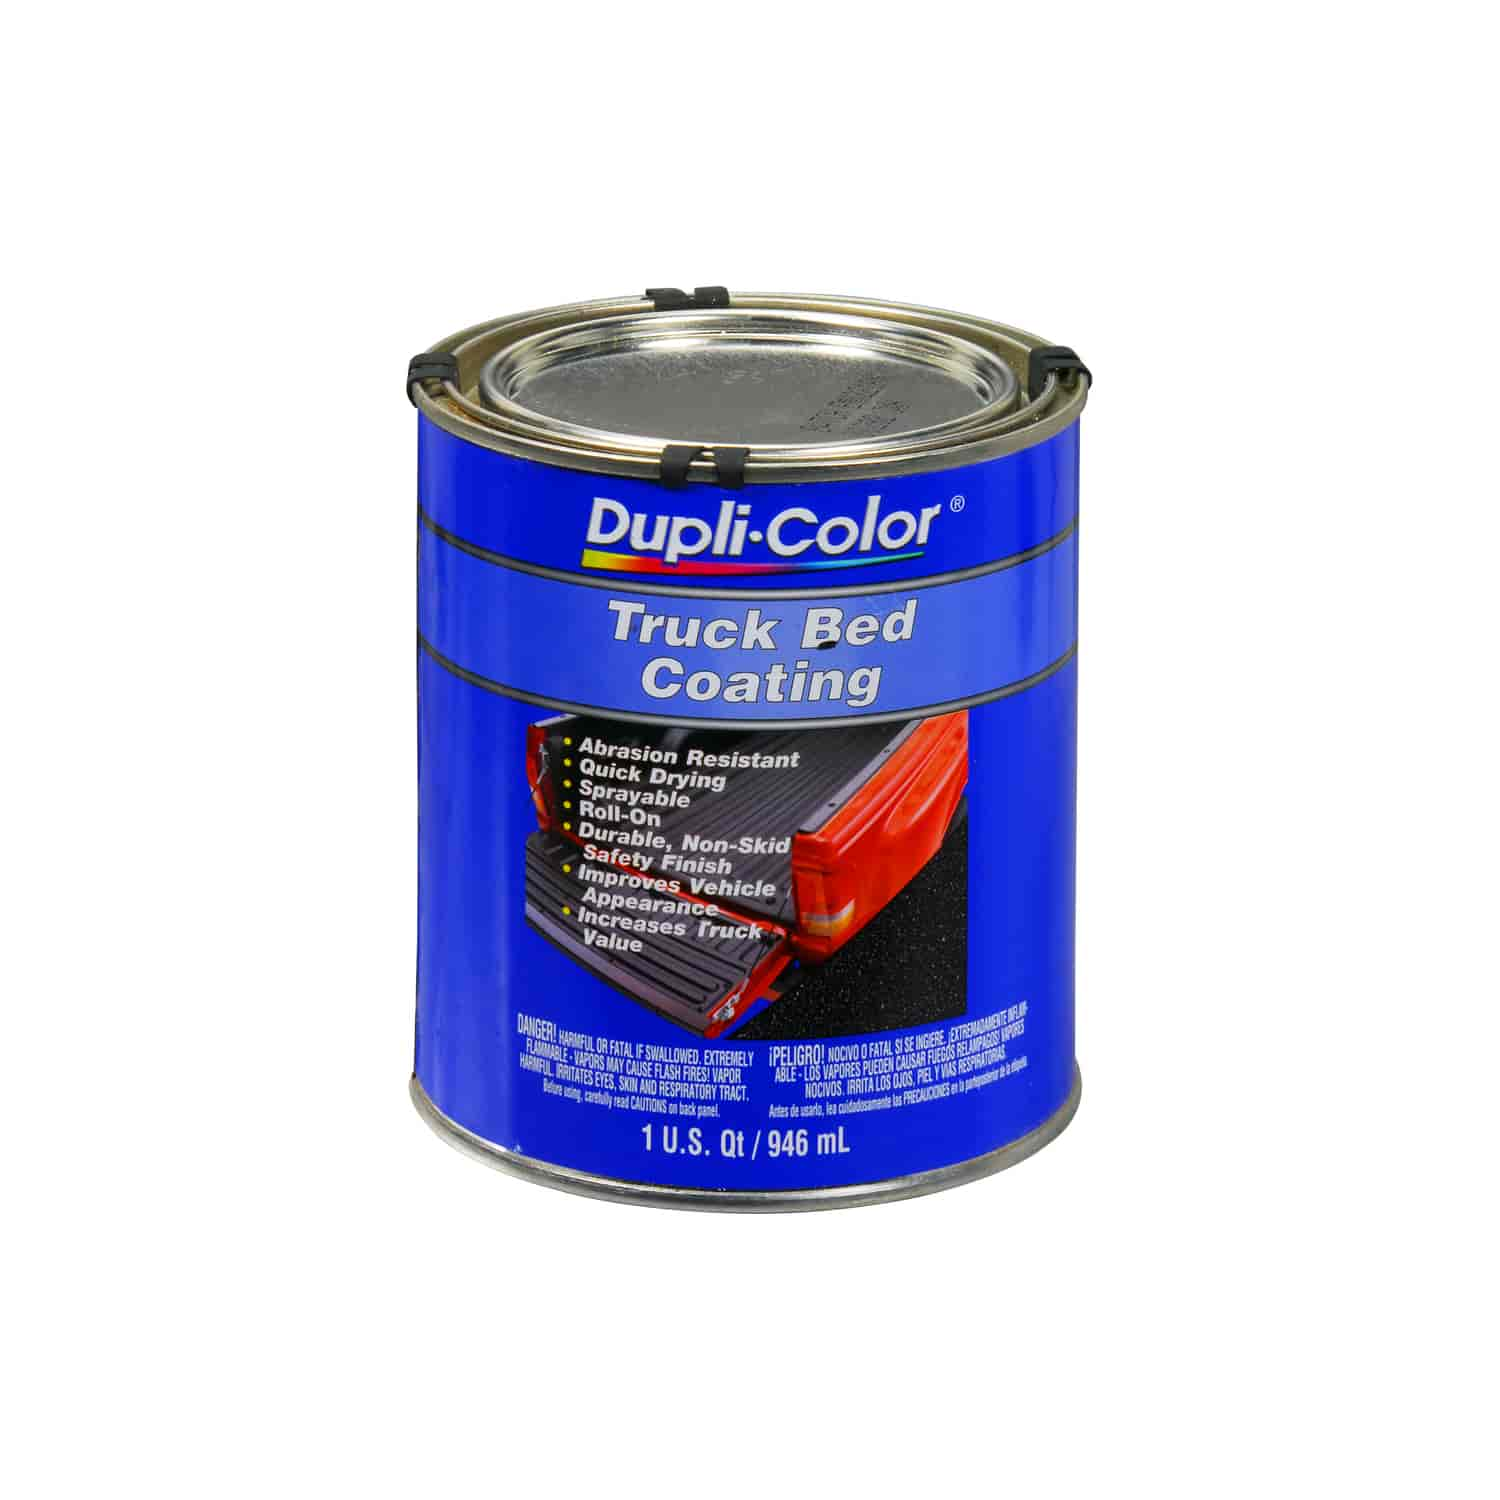 Duplicolor TRQ254 - Duplicolor Truck Bed Coatings